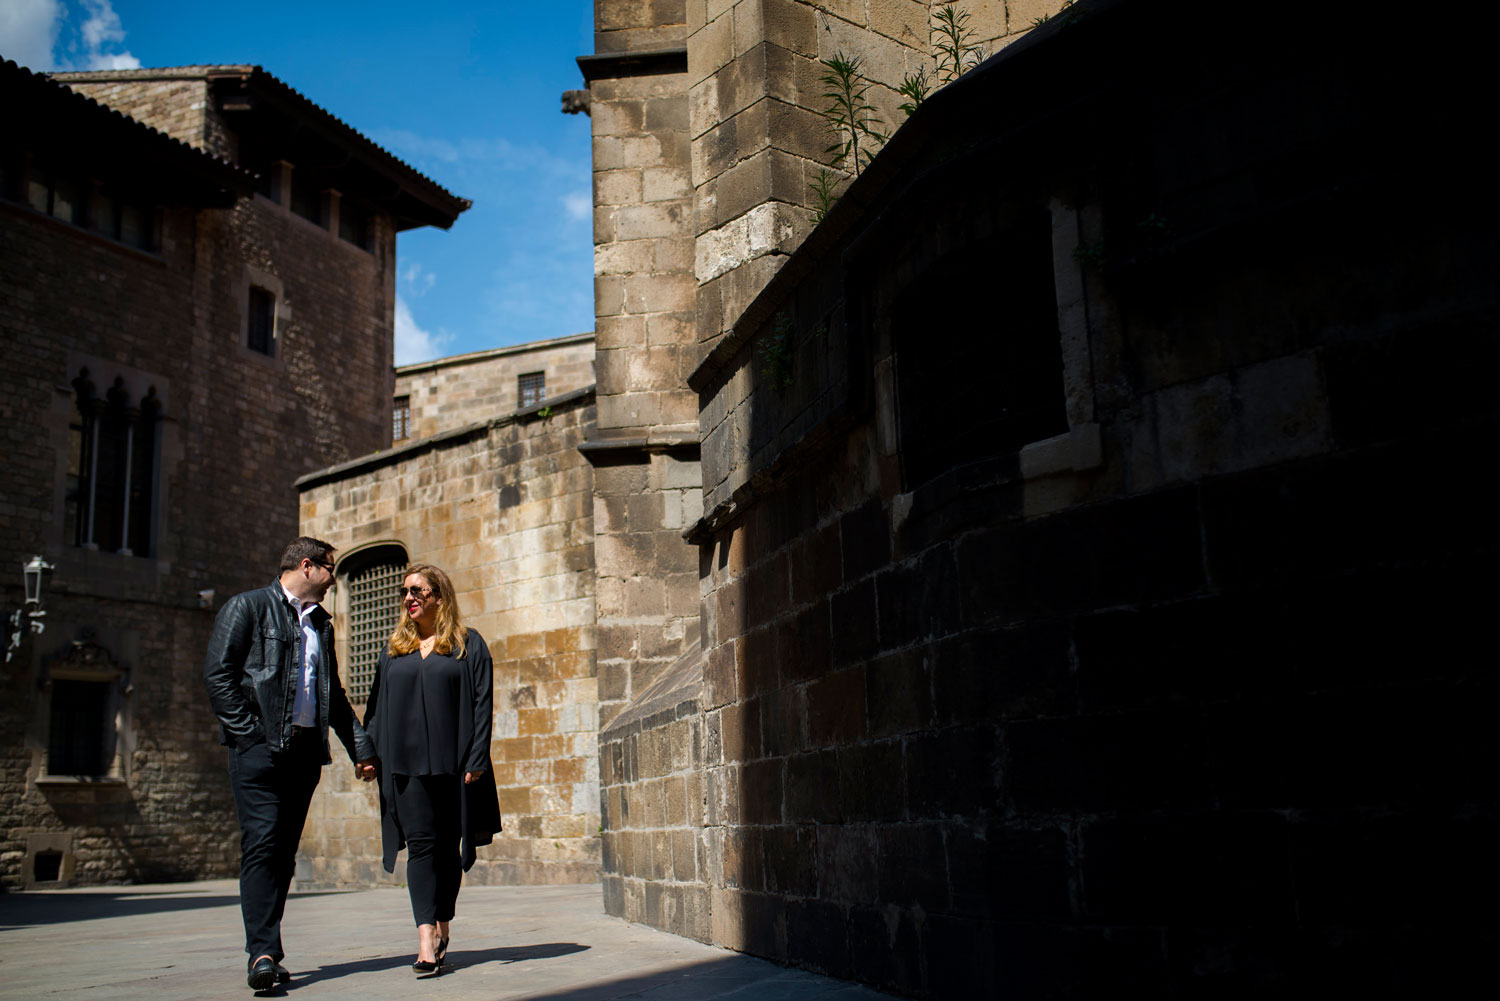 Michelle Durpetti and Collin Pierson engagement photos in Barcelona, Spain holding hands in street